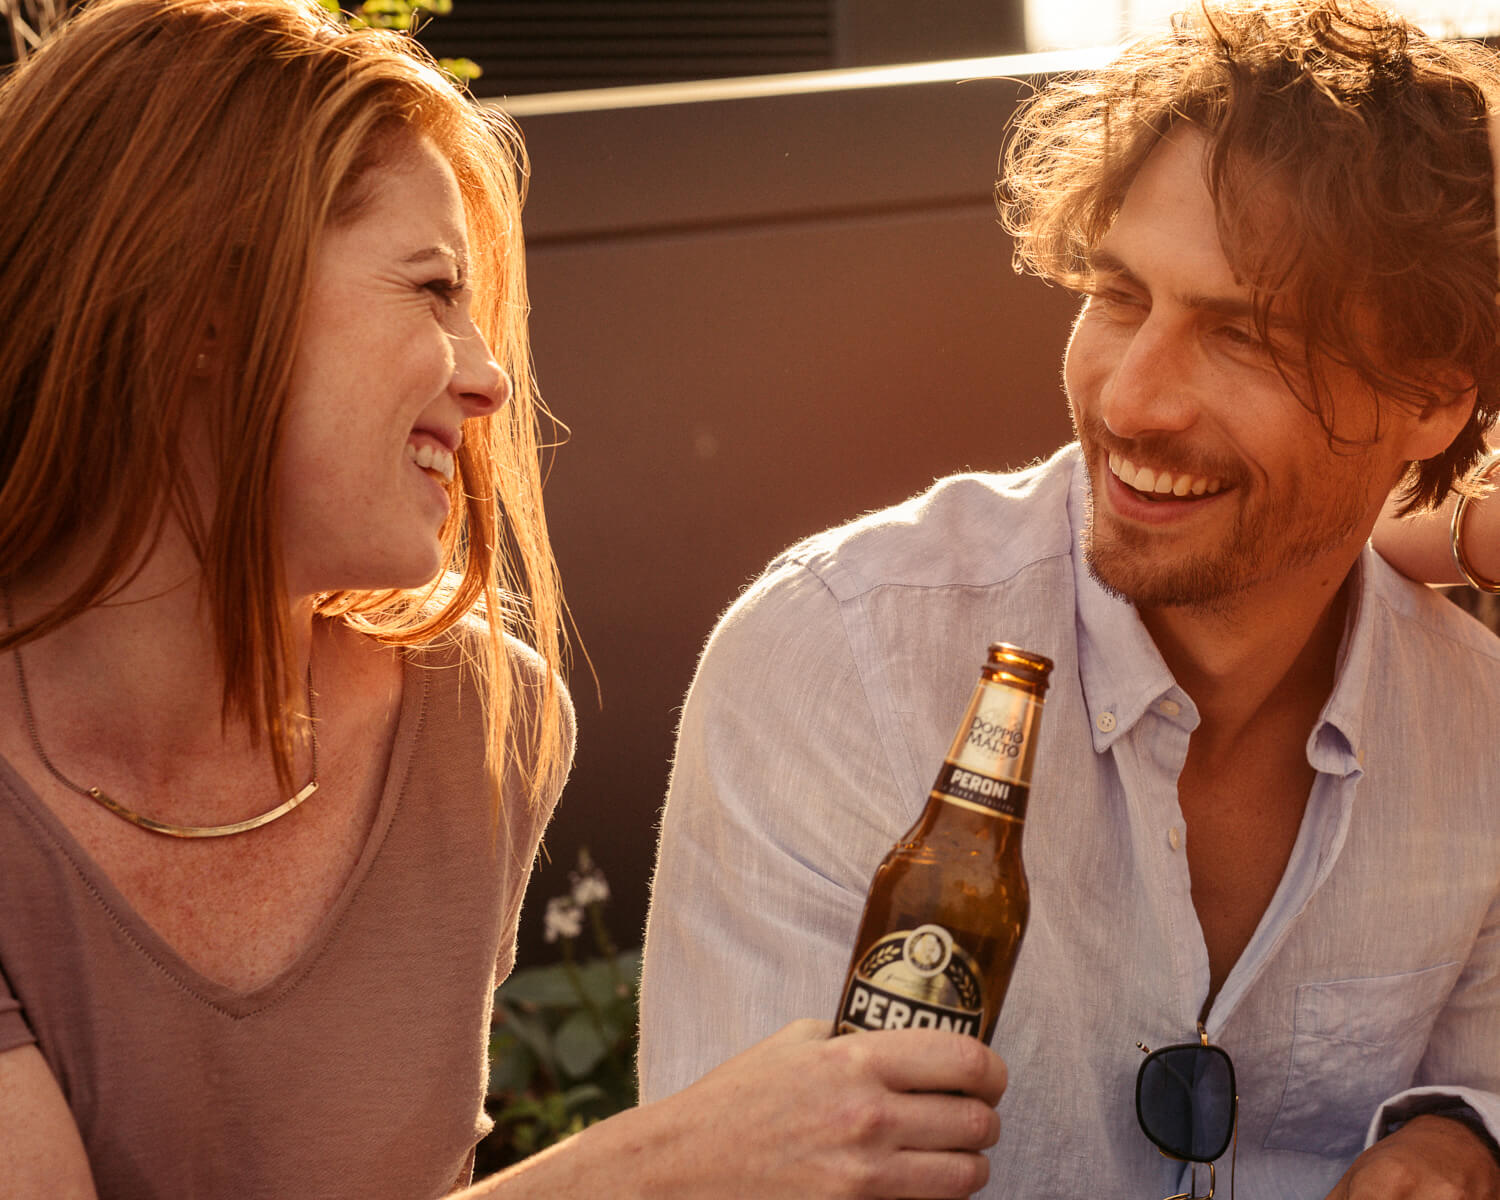 laugh drinking Peroni by lifestyle photographer Tim Cole